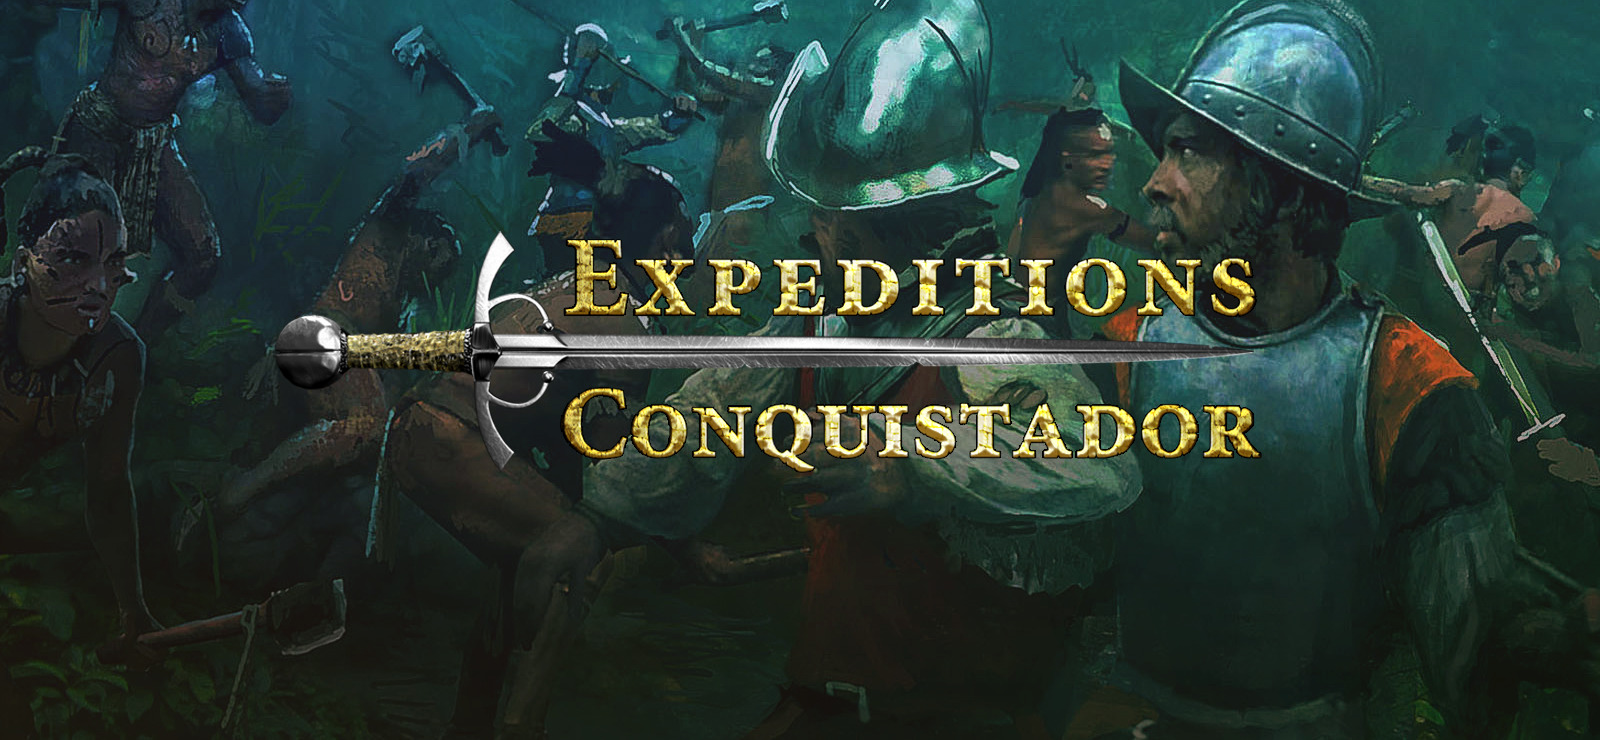 #Expeditions Conquistador